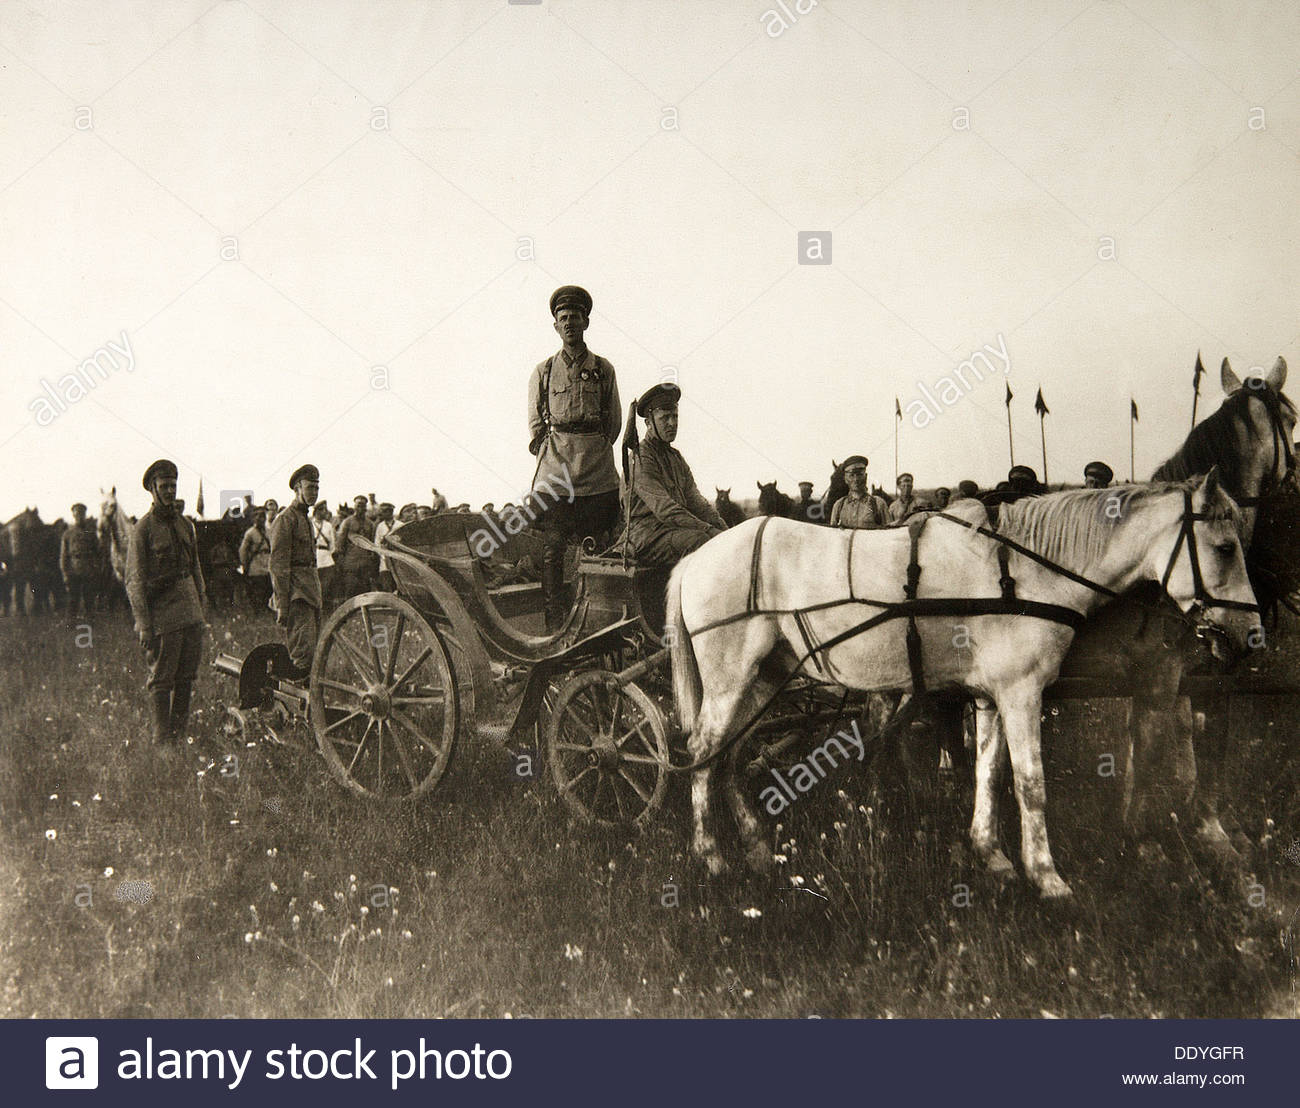 First Cavalry Army tachanka, Russian Civil War, 1919. - Stock Image